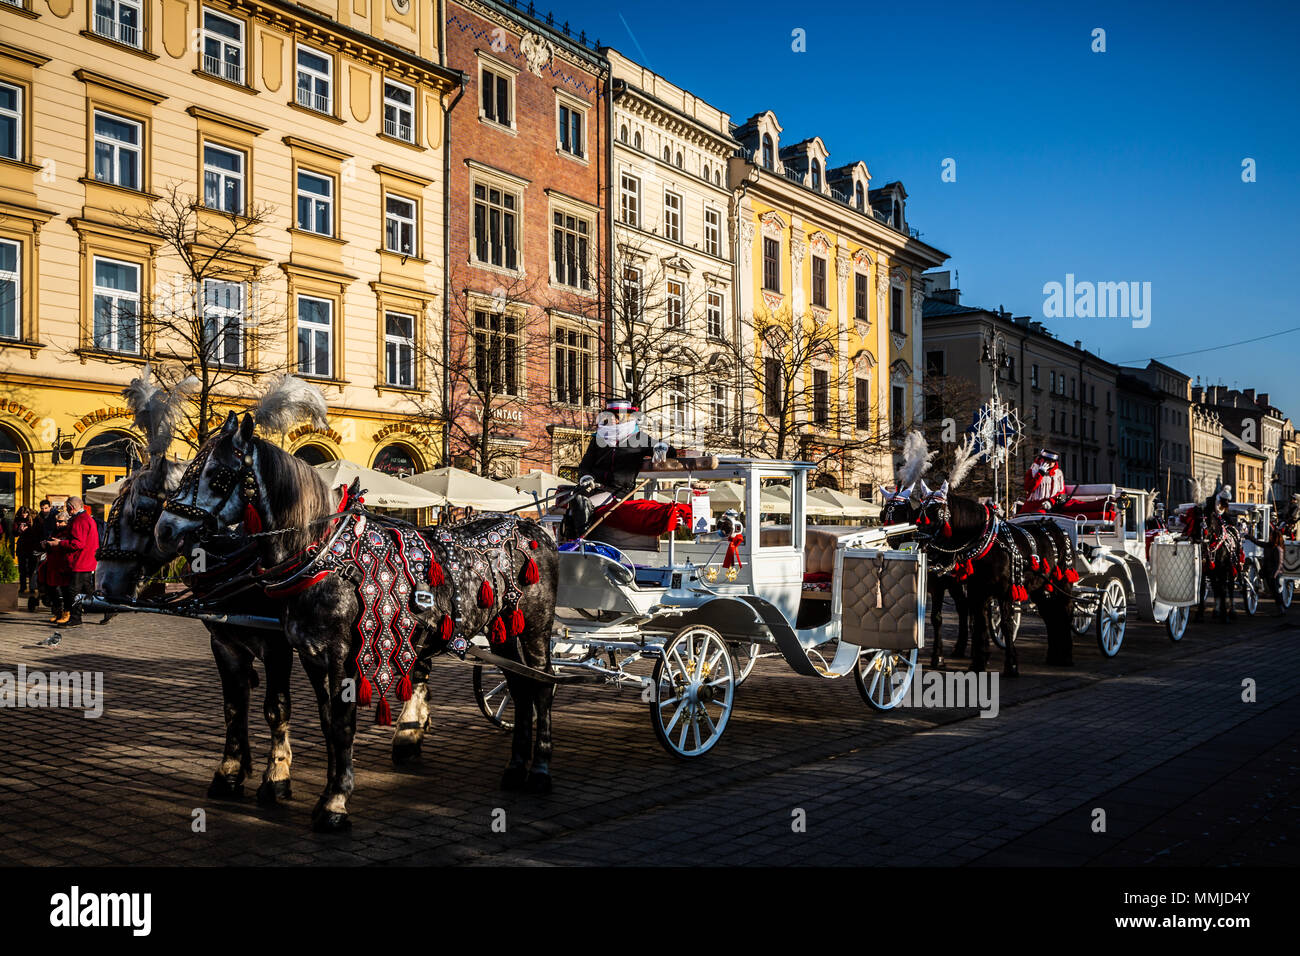 KRAKOW, POLAND - DECEMBER 16, 2016. Horse carriages at main square in Krakow in a sunny day, Poland - Stock Image